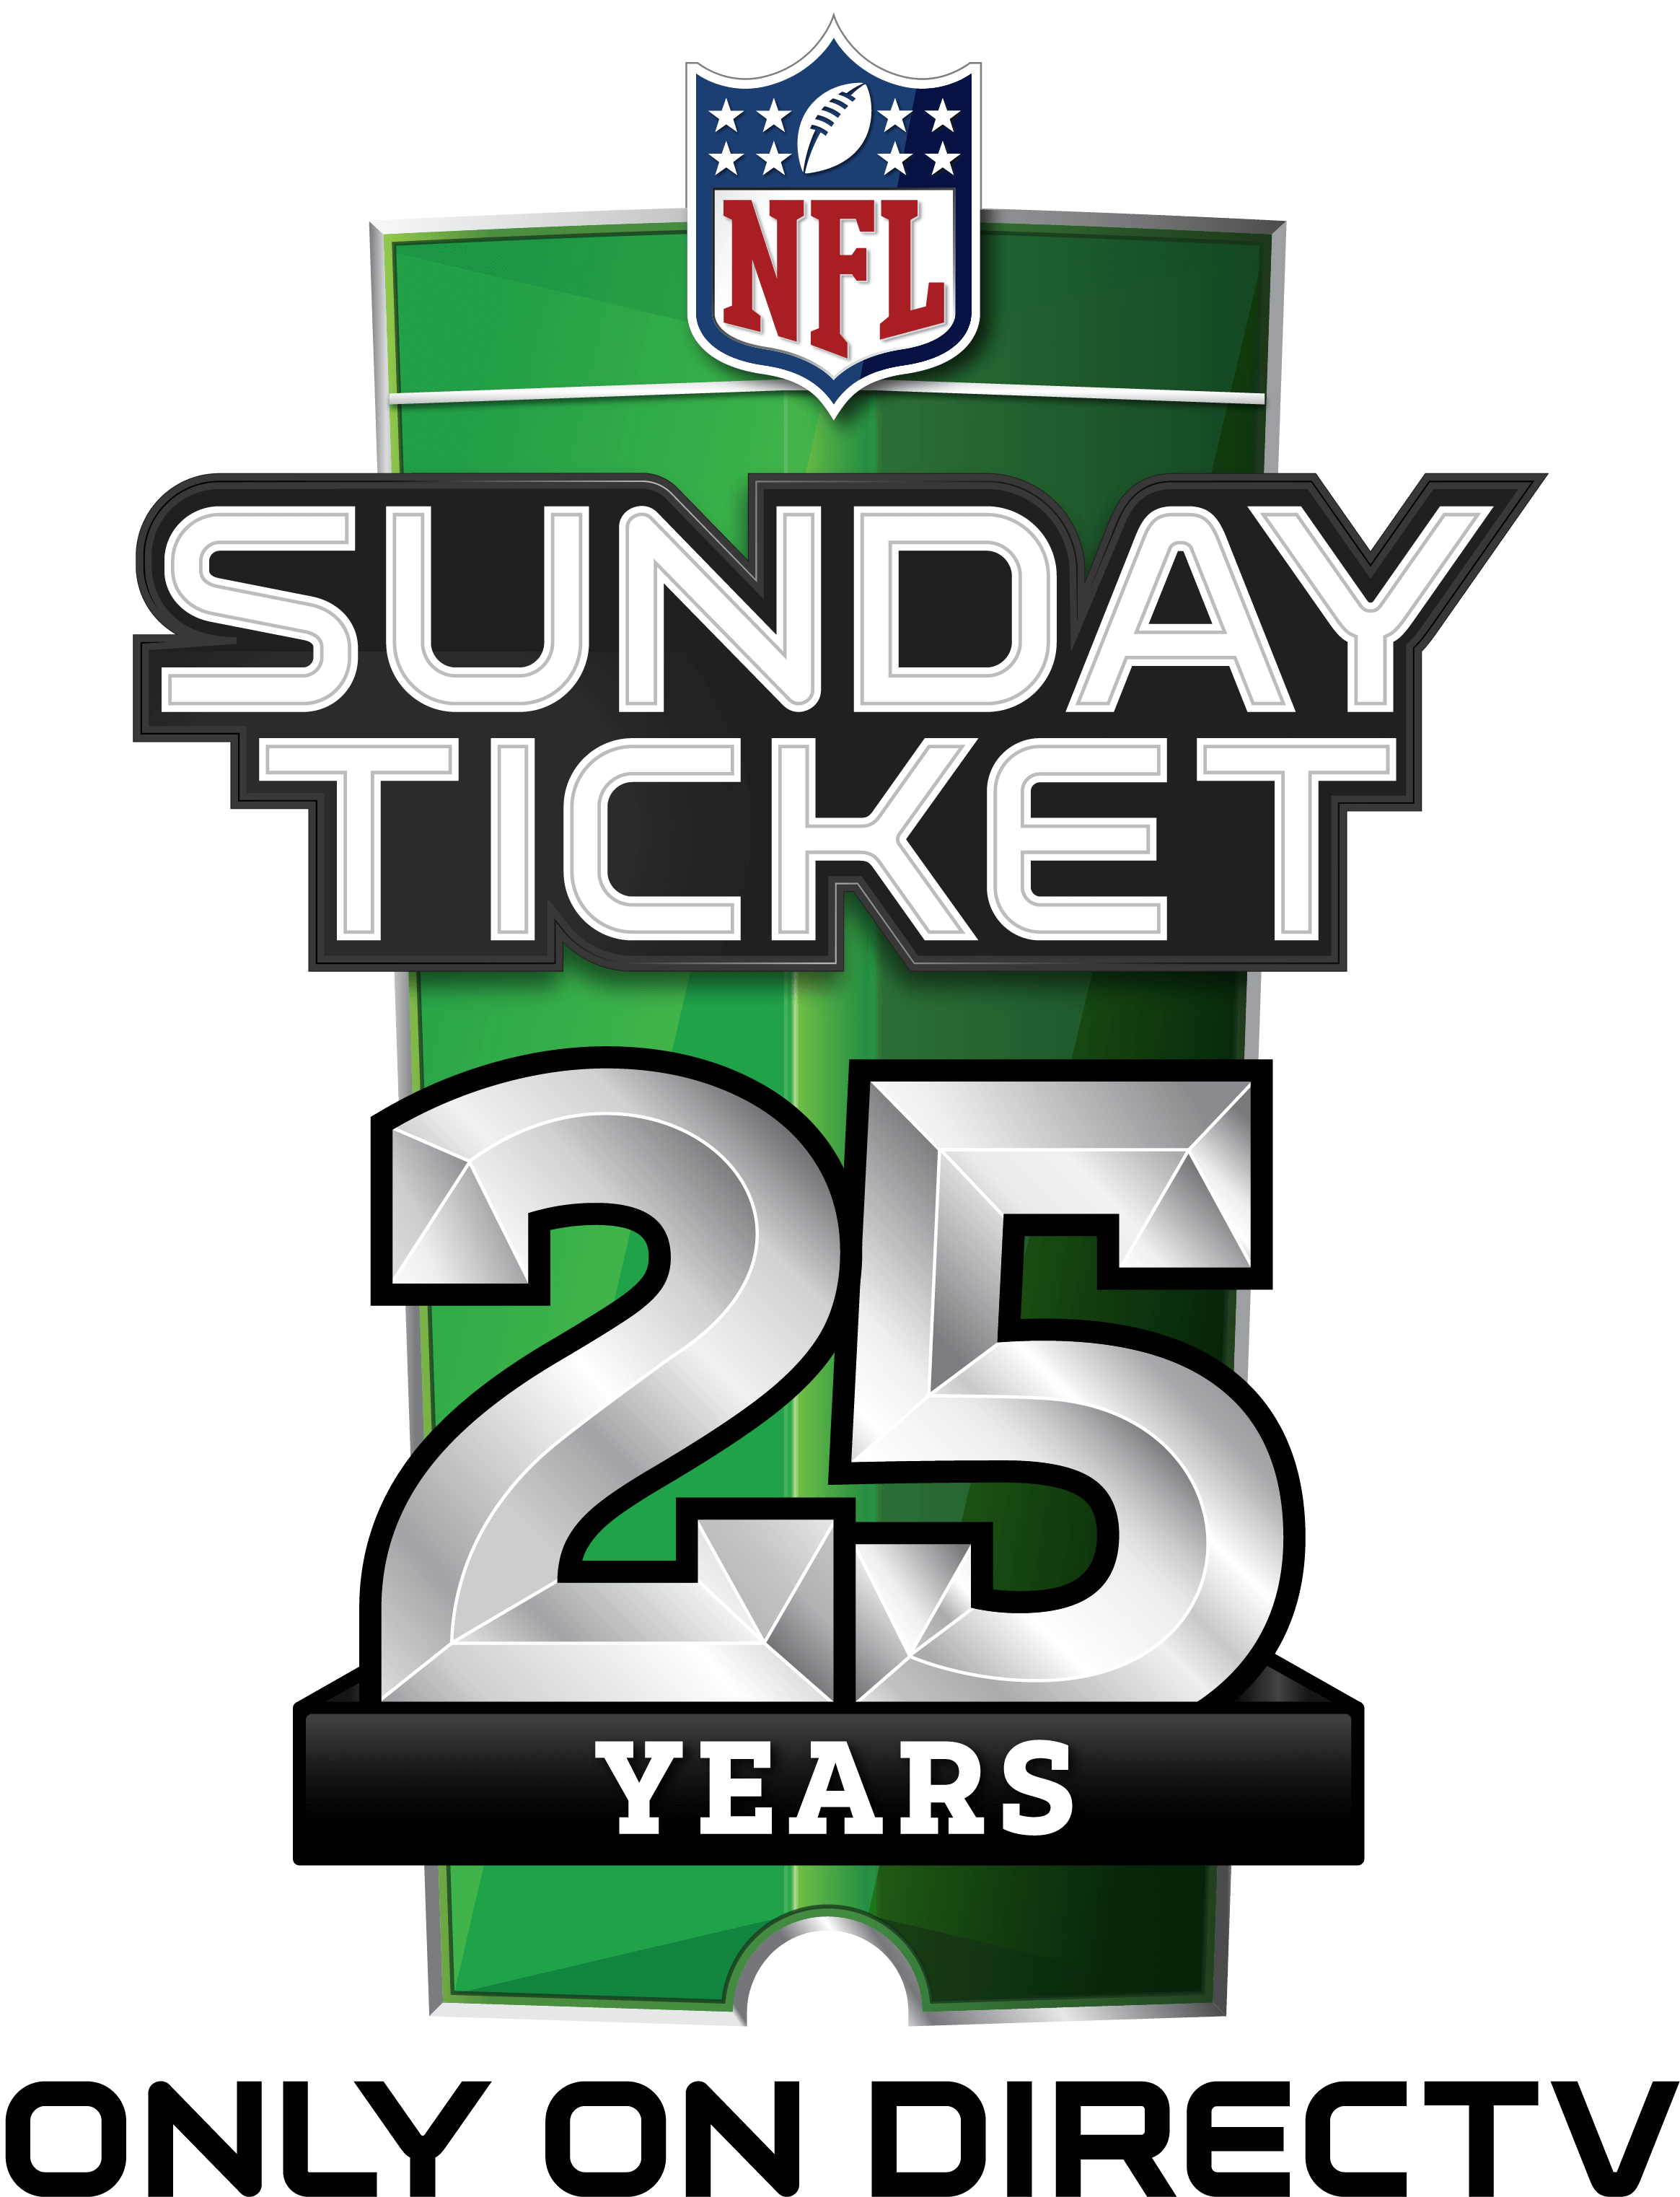 Sunday ticket logo png. Nfl